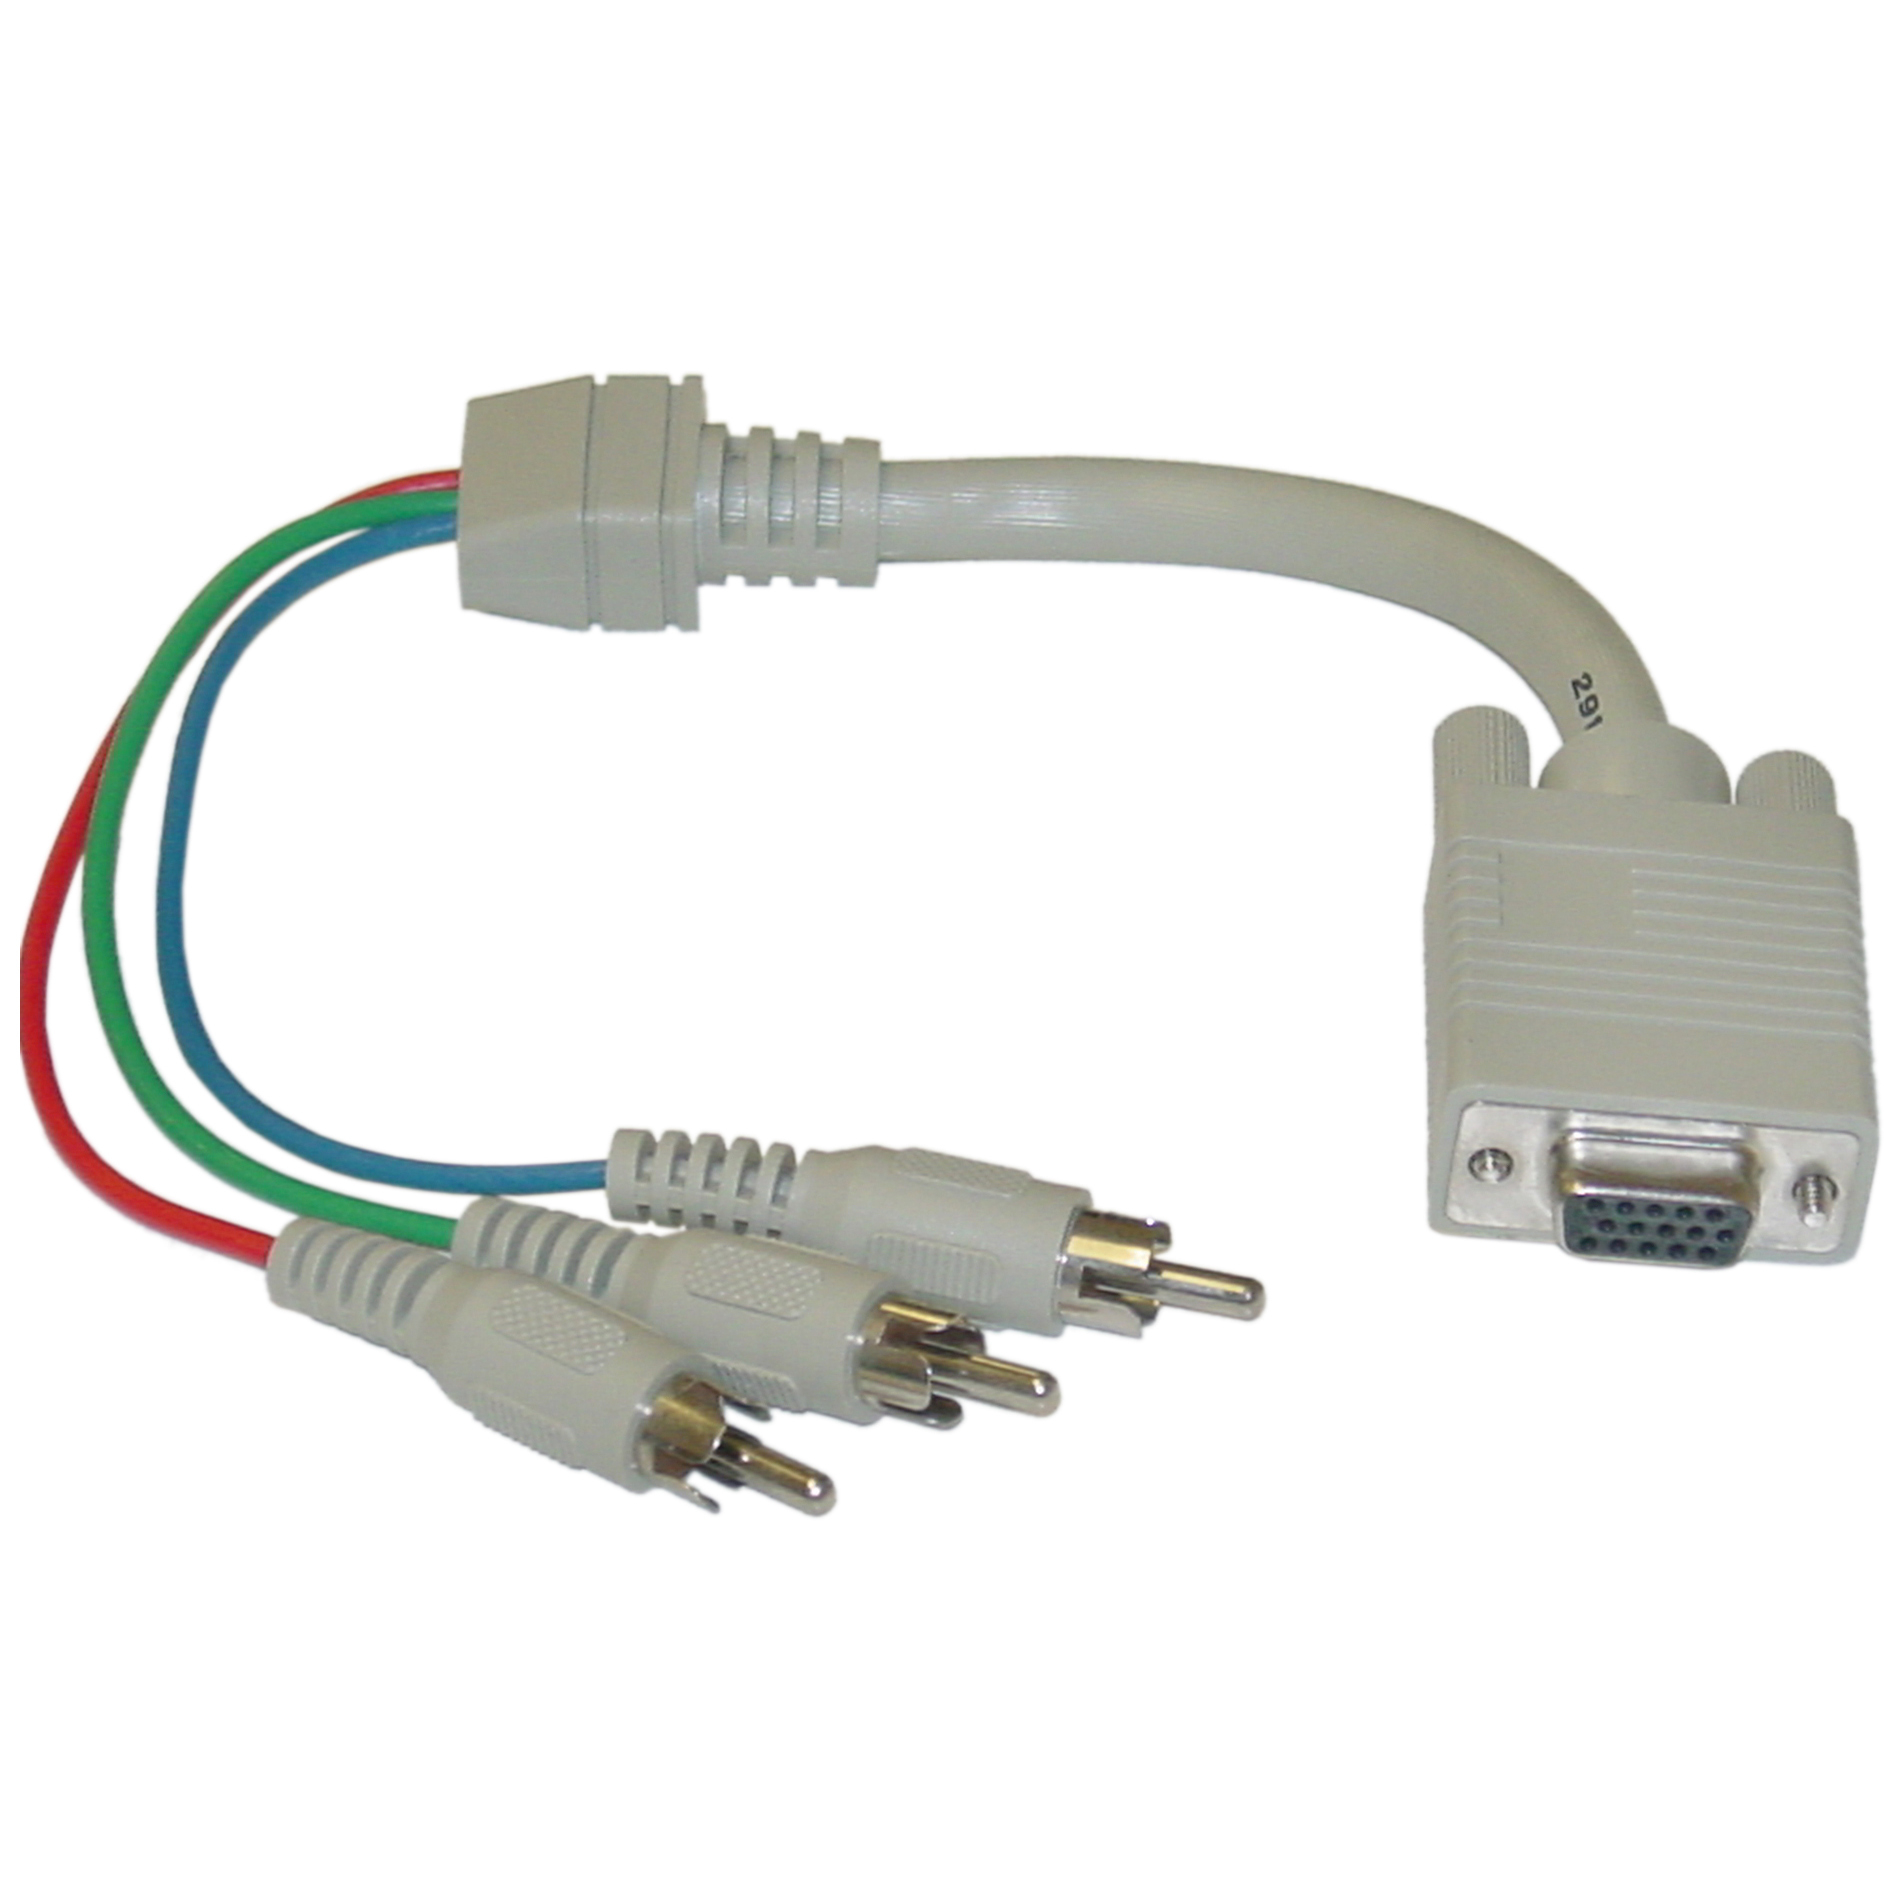 Vga Male Wiring Diagram | Manual E-Books - Vga To Male. Usb Cable Wiring Diagram